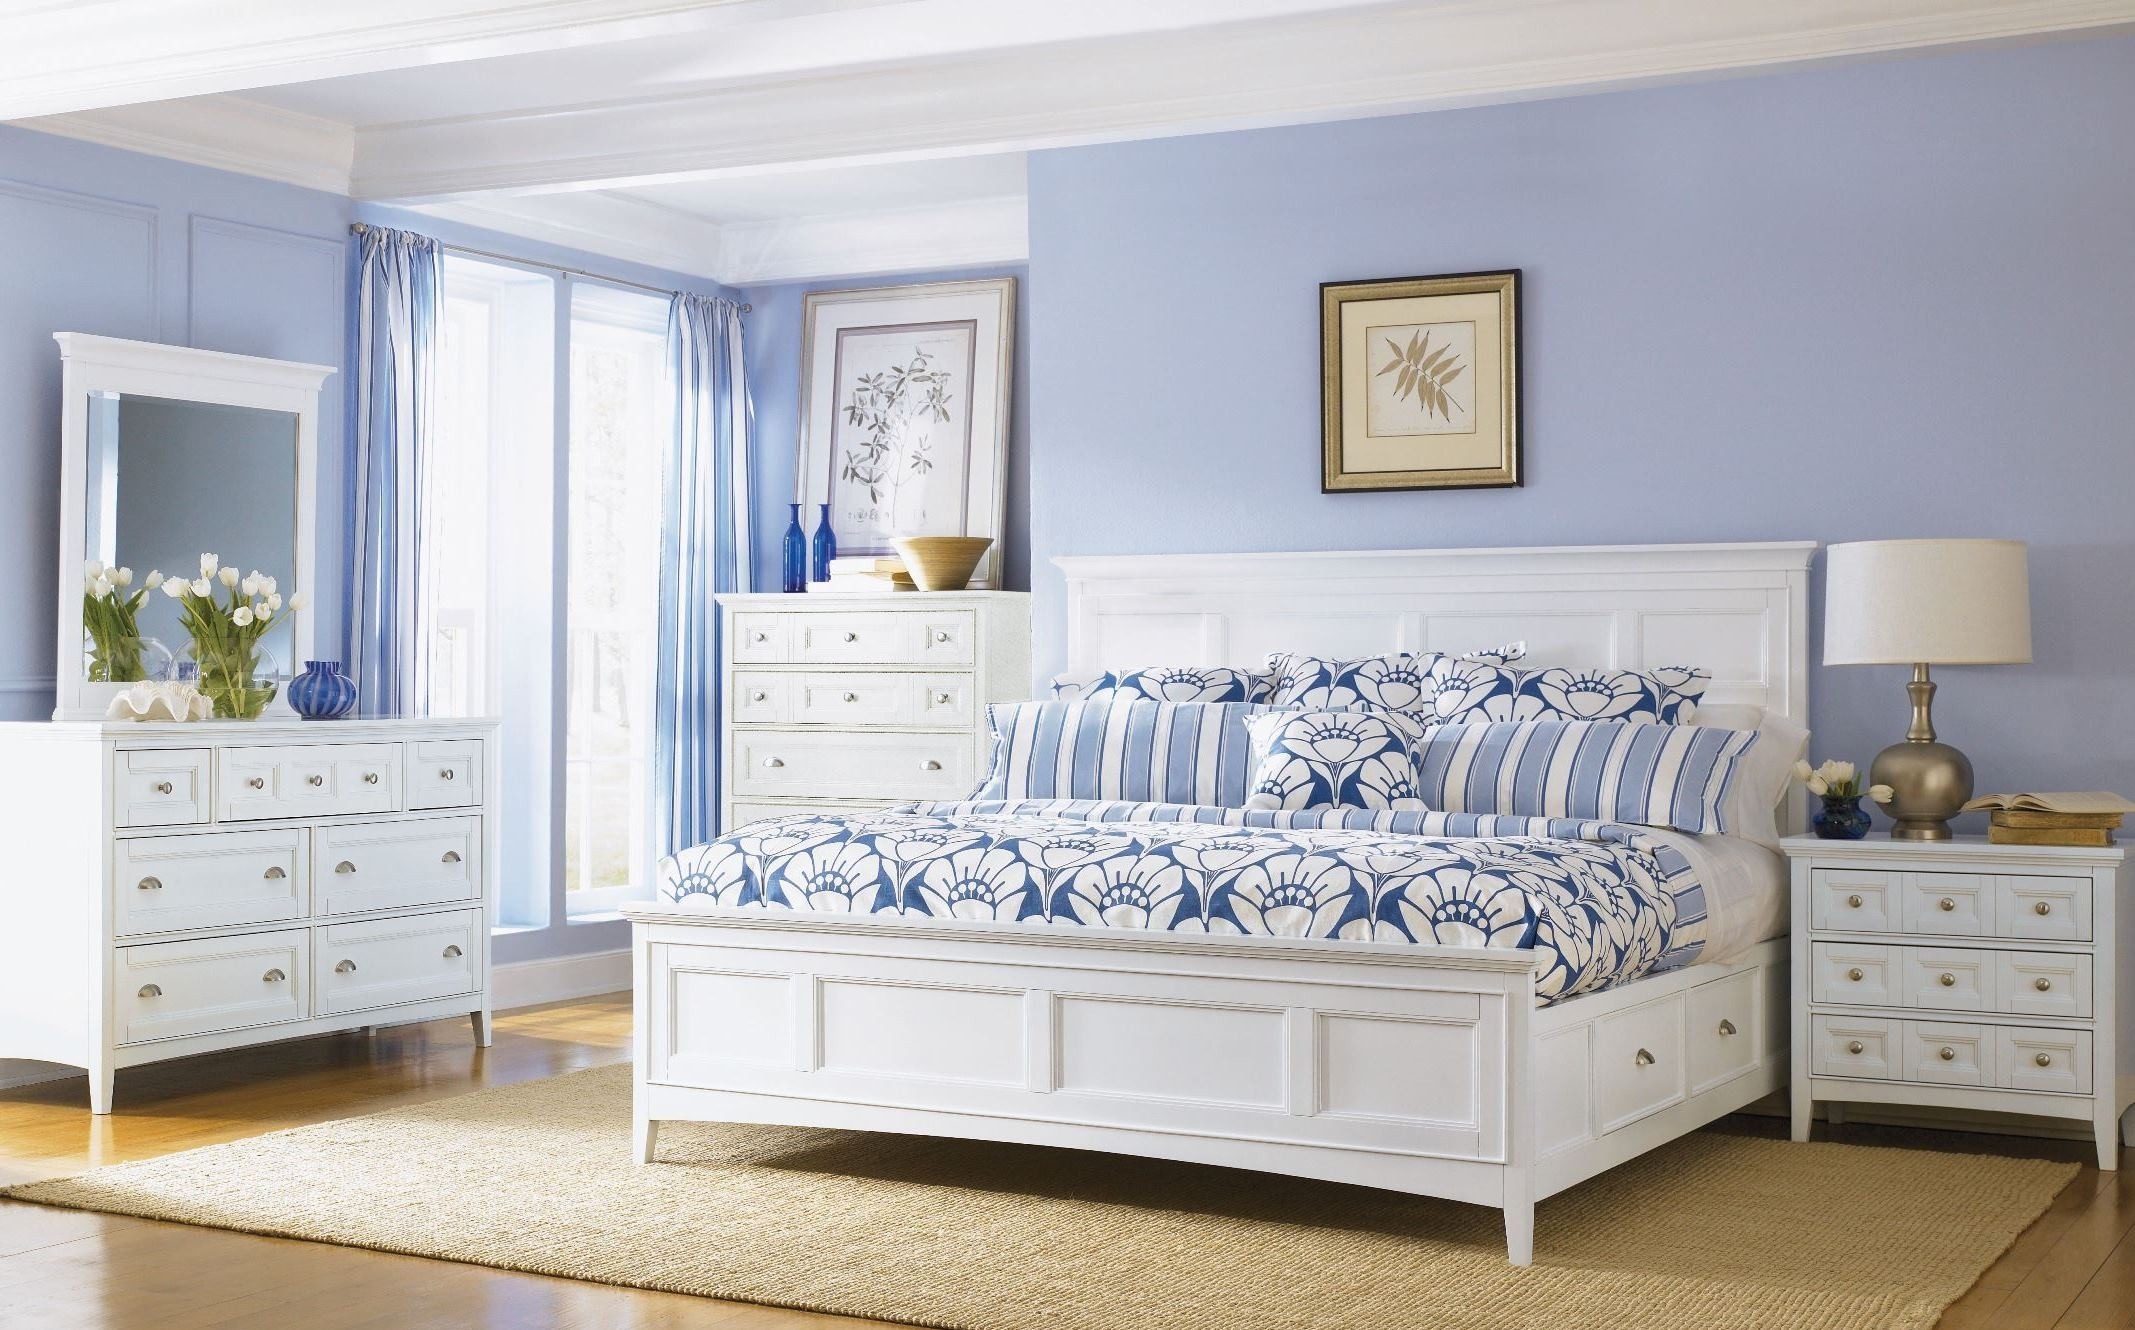 Kentwood Panel Bedroom Set from Magnussen Home (B1475-54H